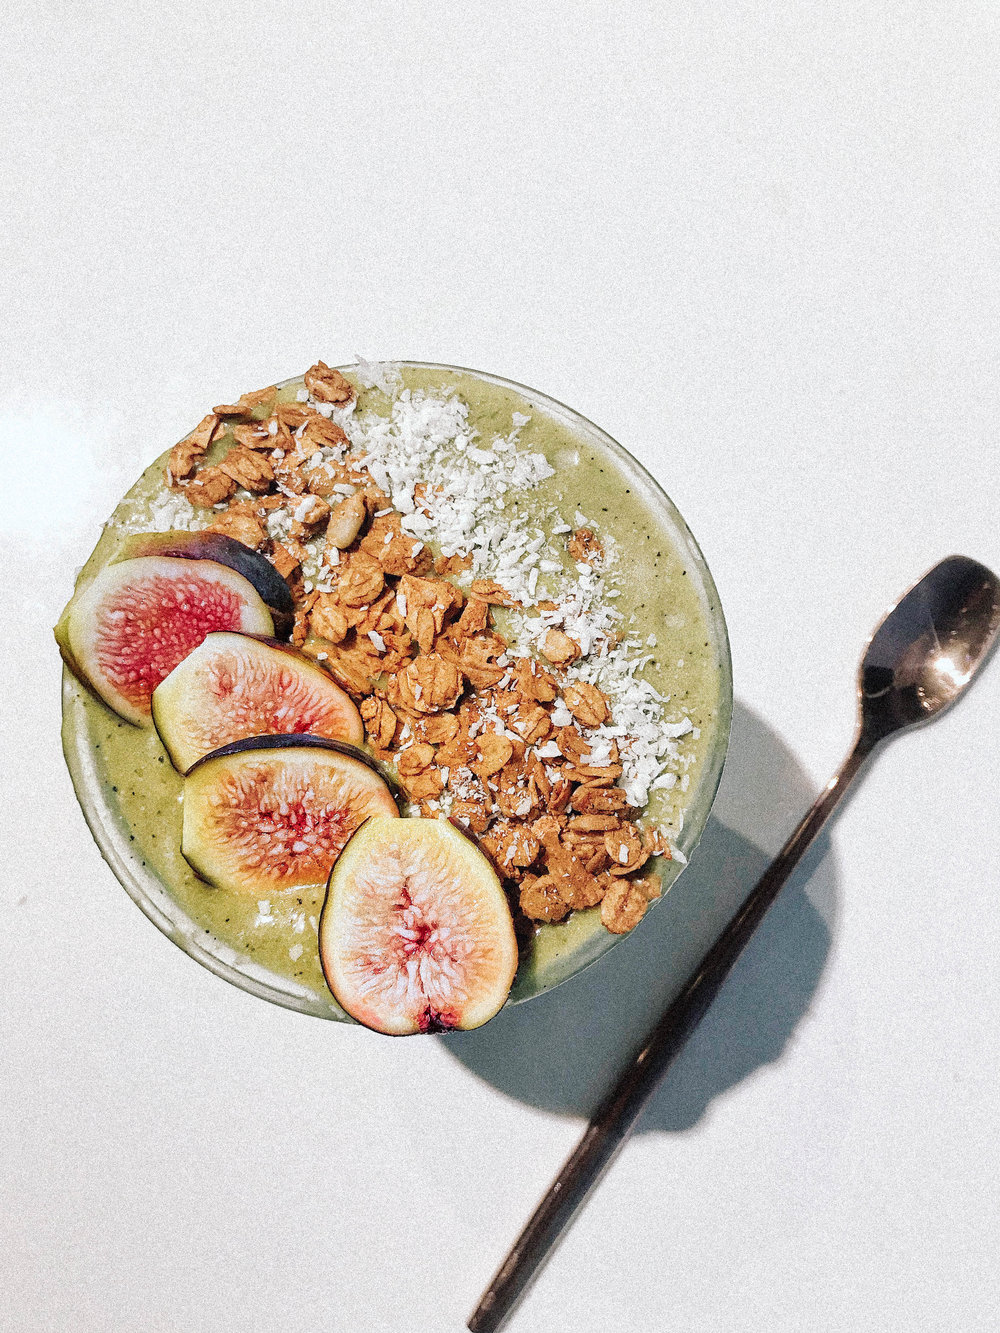 mission smoothie bowl